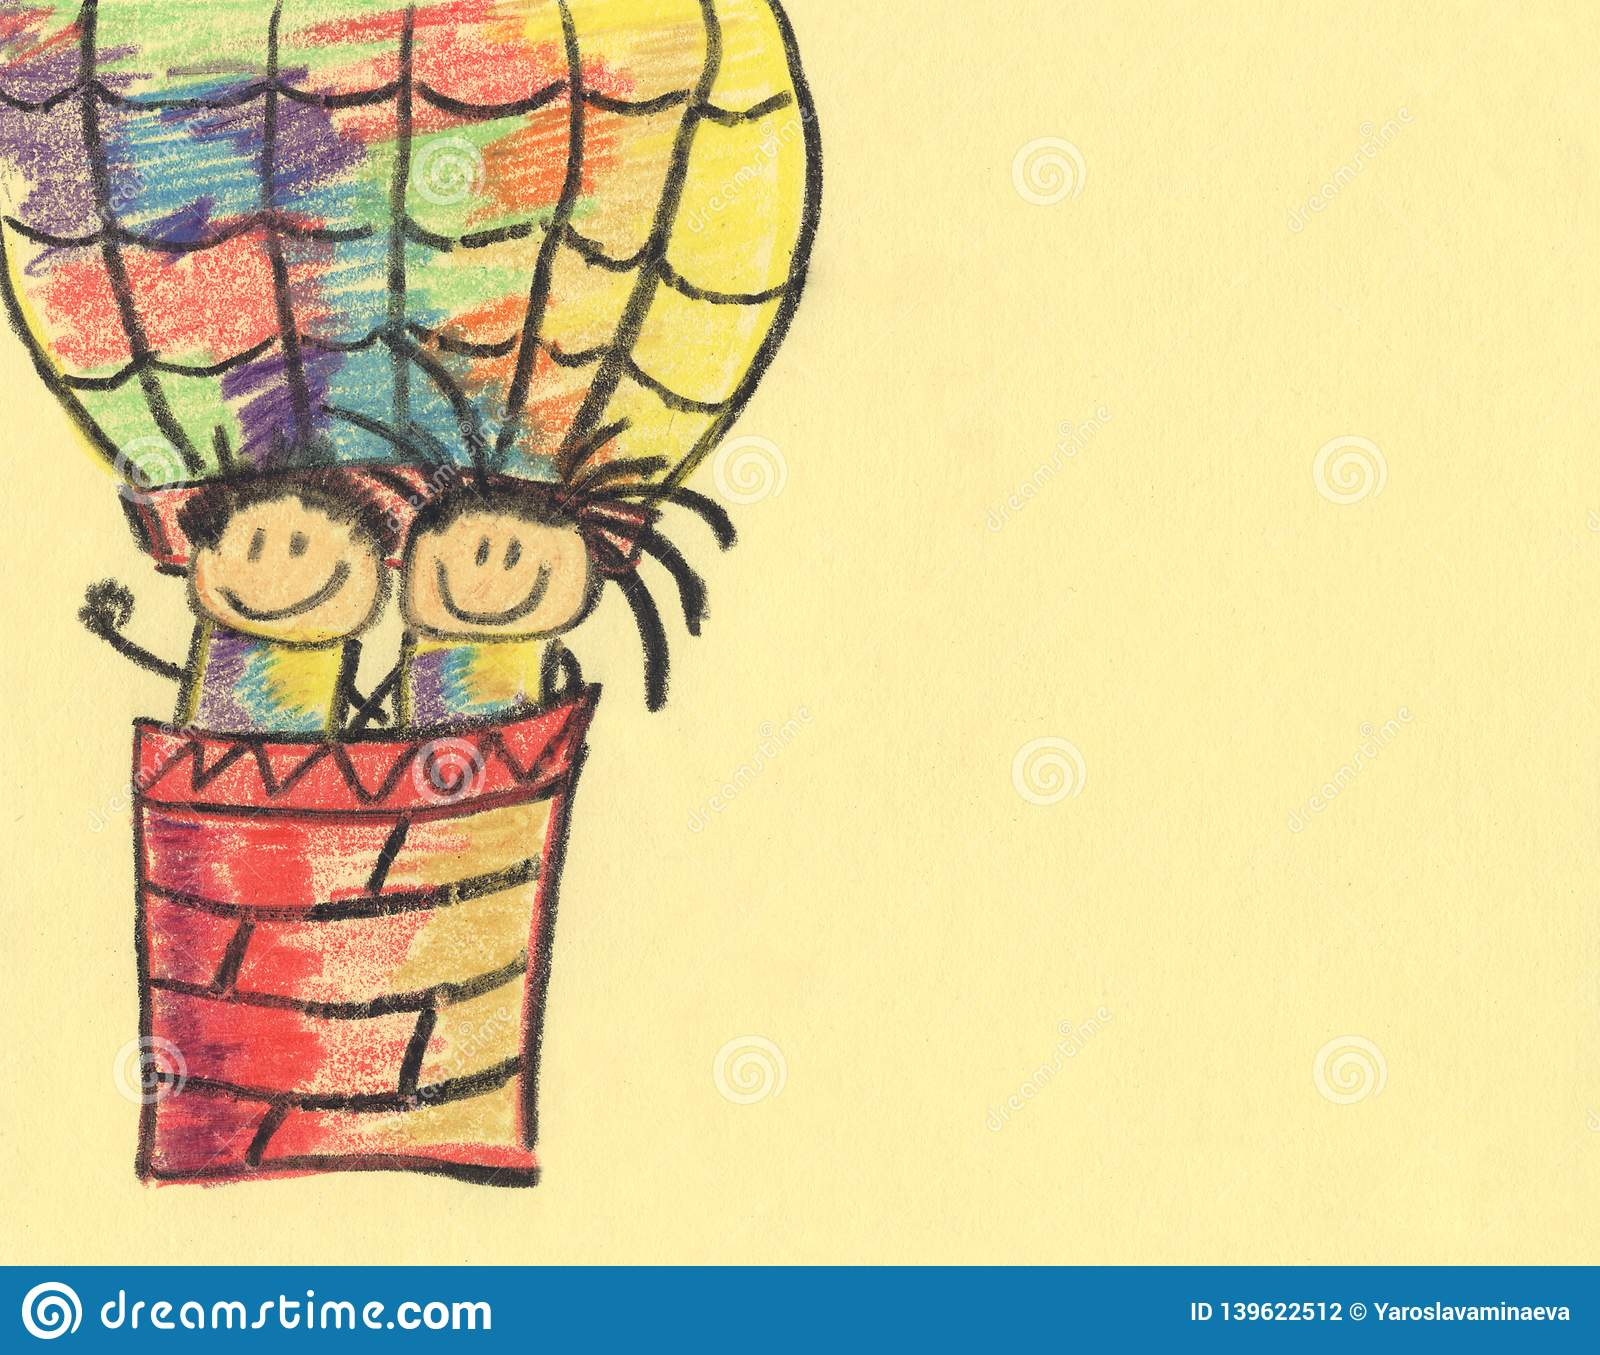 Balloon On A Light Background Drawing With Colored Pencils On A Light Background Children S Drawing Colorful Background Stock Illustration Illustration Of Light Glass 139622512